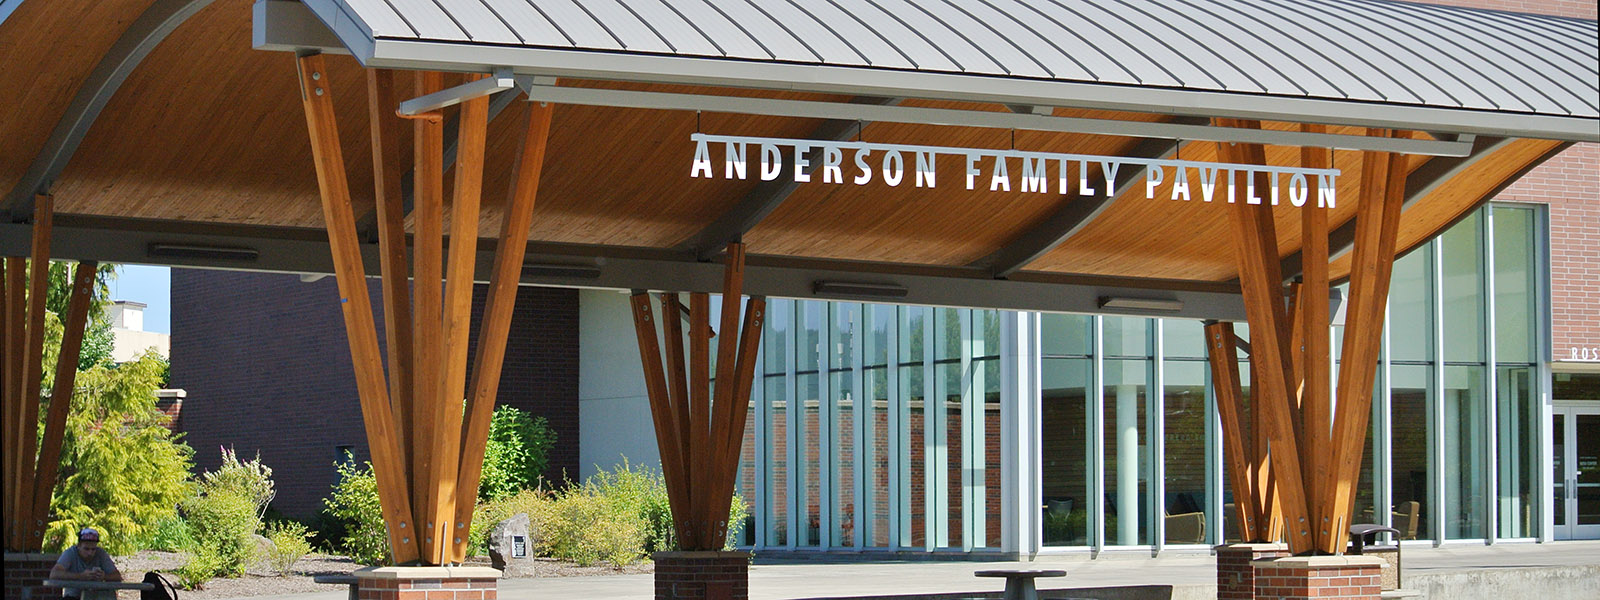 Anderson Family Pavilion